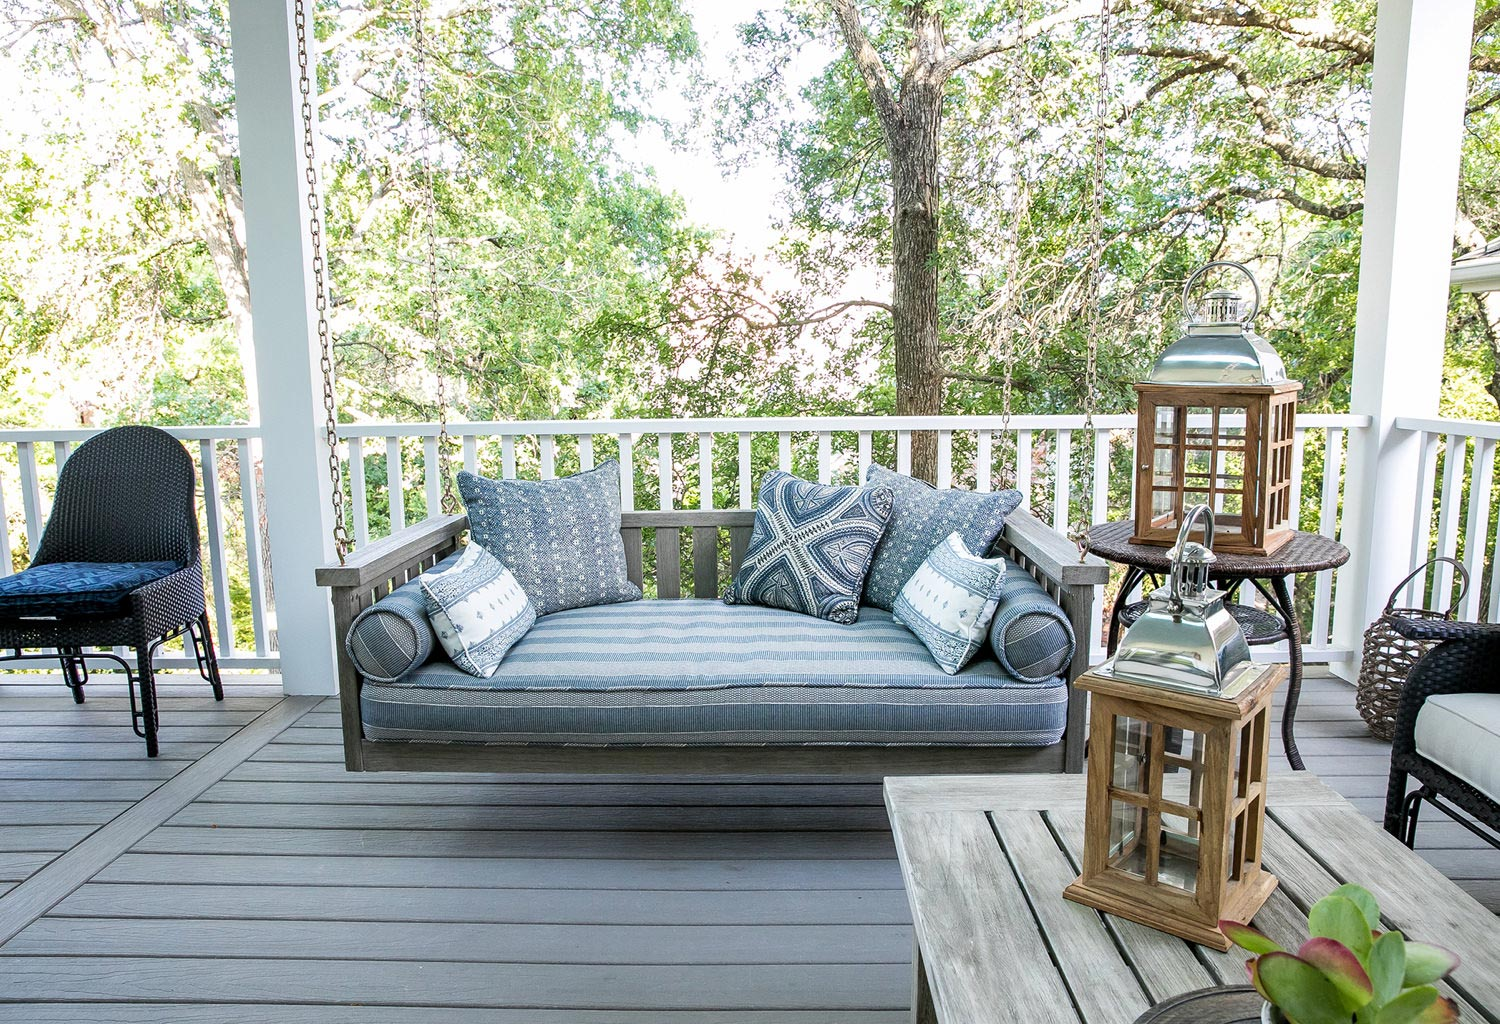 Outdoor deck with bench swing and furniture